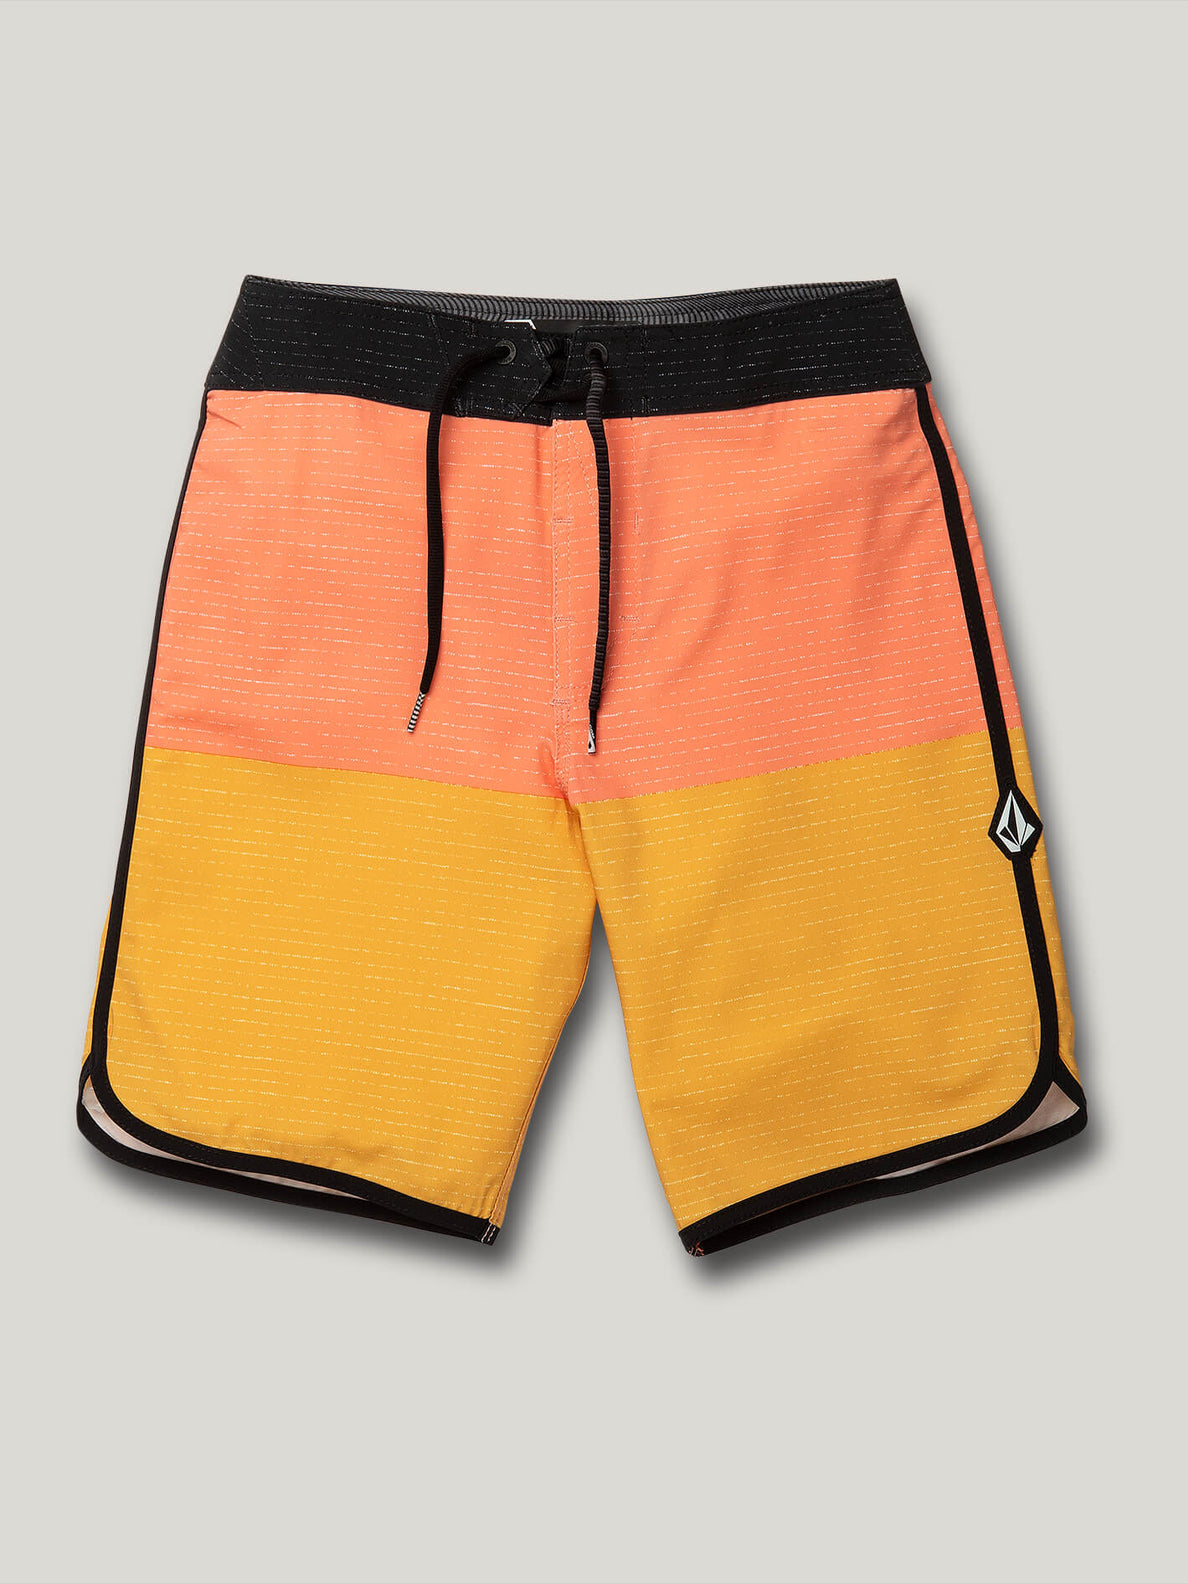 Big Boys Lido Scallop Mod Trunks - Mineral Yellow (C0822015_MYL) [F]